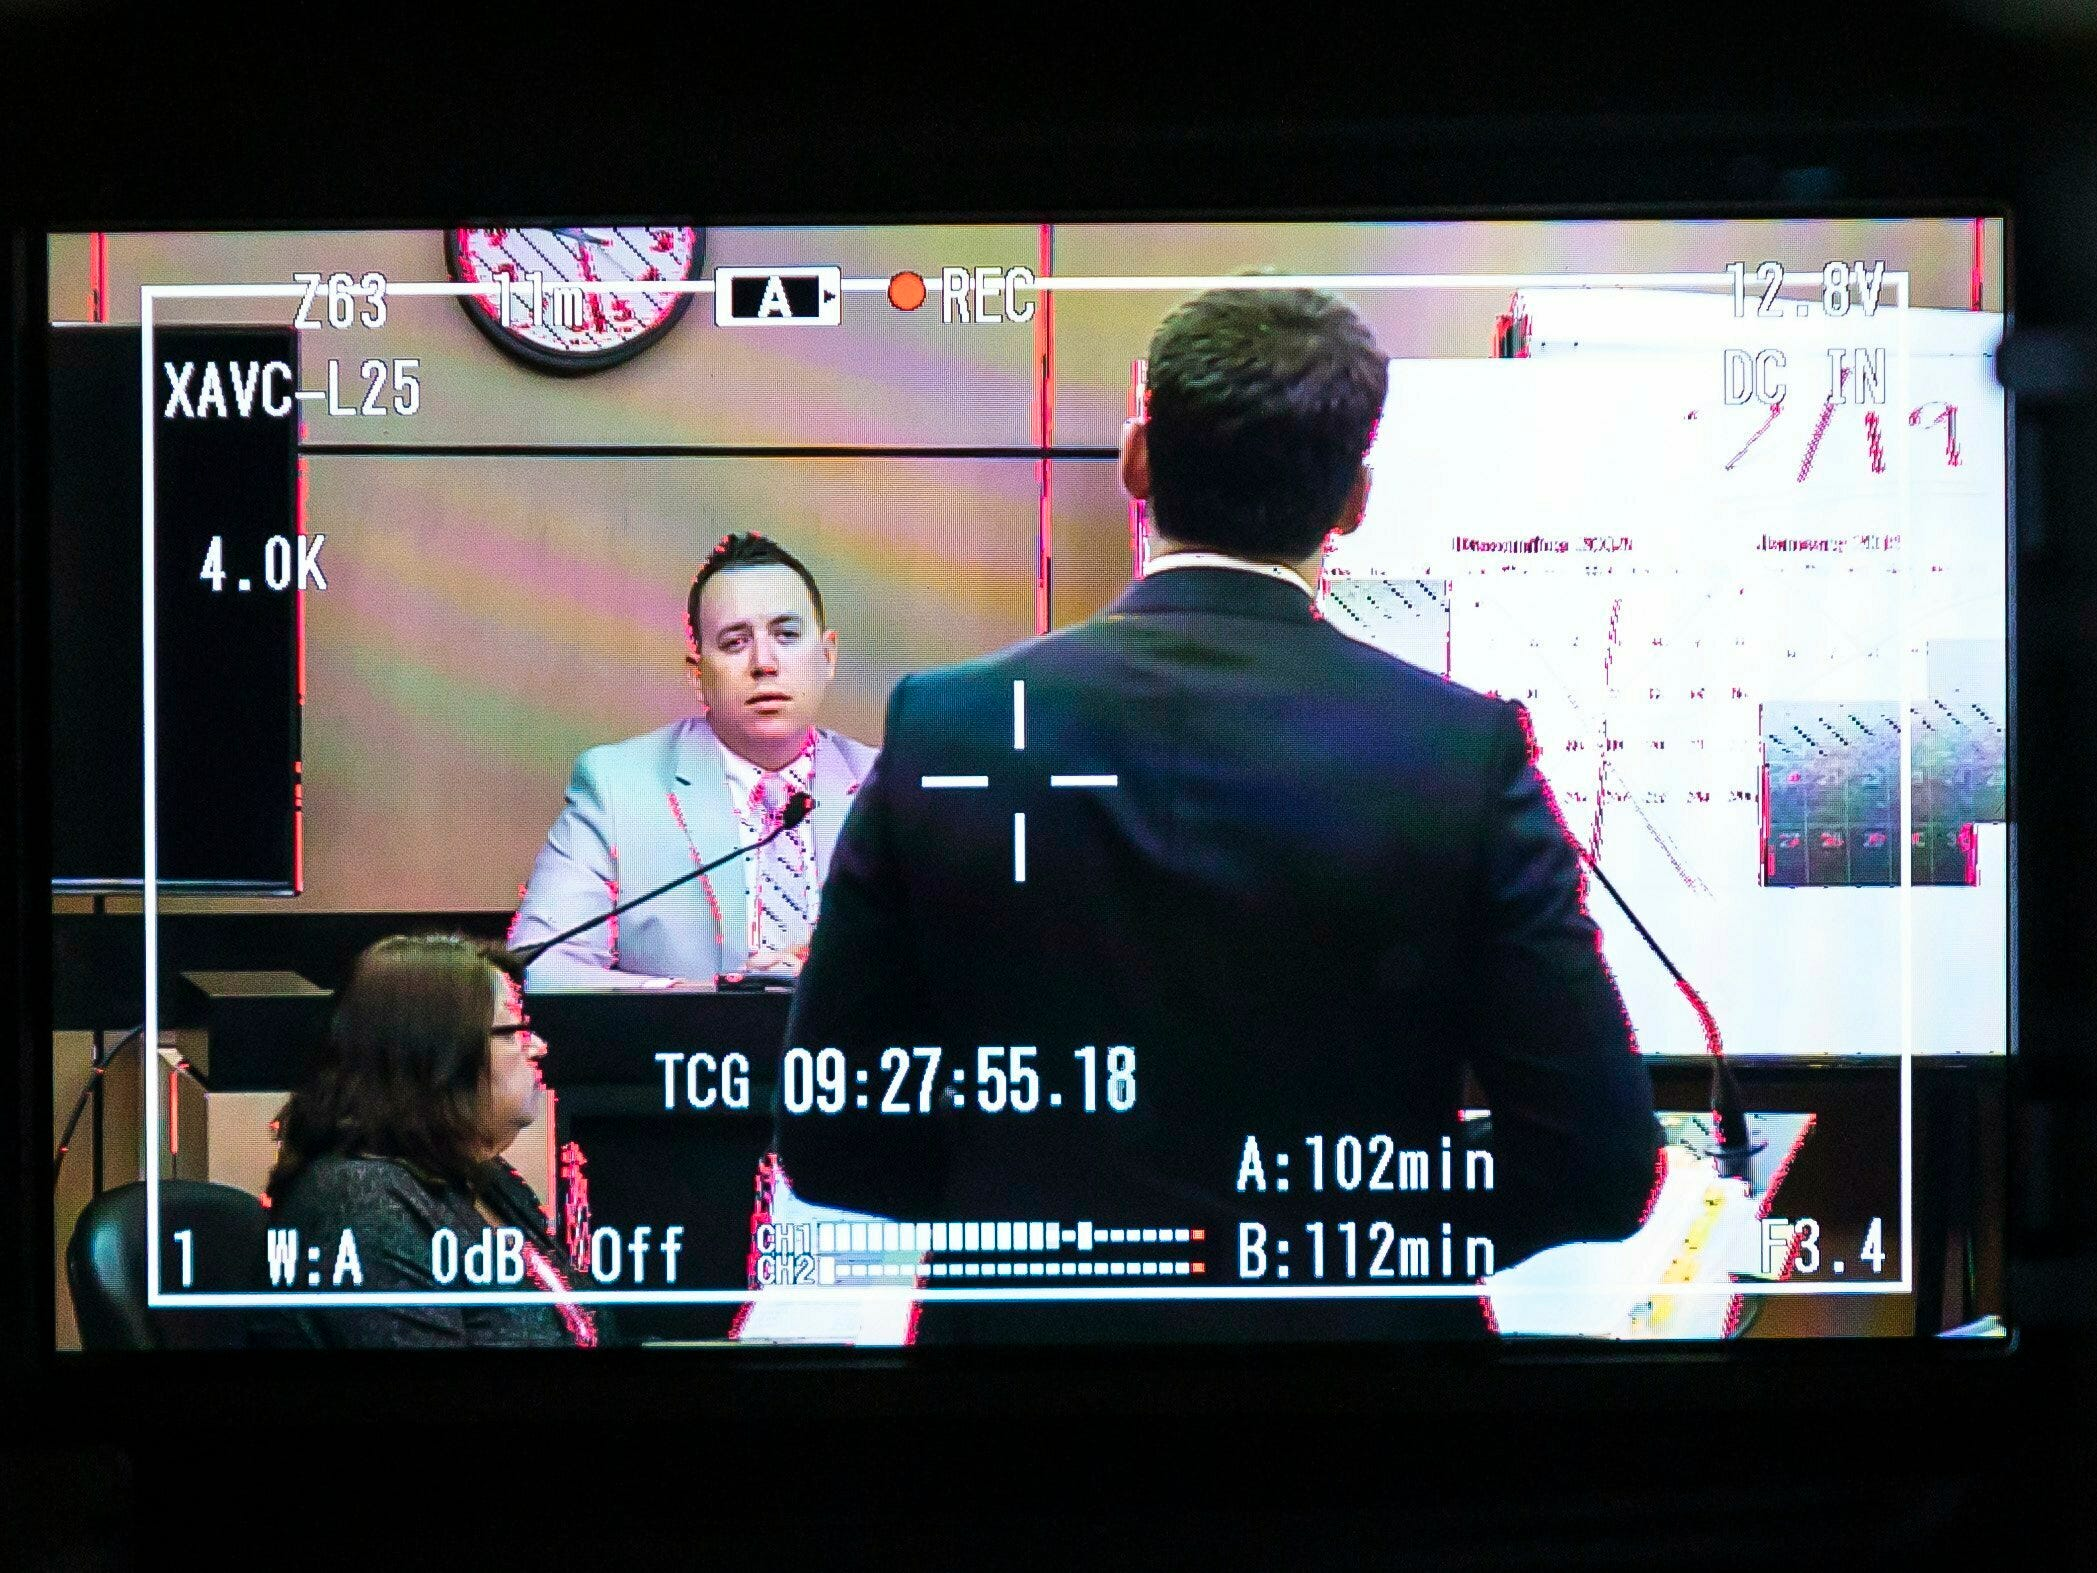 Jupiter Police Detective Andrew Sharp, displayed on a courtroom camera monitor, is questioned by Alex Spiro, right, attorney for New England Patriots owner Robert Kraft, during a motion hearing in the Kraft prostitution solicitation case, Wednesday, May 1, 2019, in West Palm Beach. Kraft's attorneys argue that undercover surveillance videos allegedly showing their client paying for sex at a Jupiter day spa should be ruled inadmissible and the evidence thrown out.